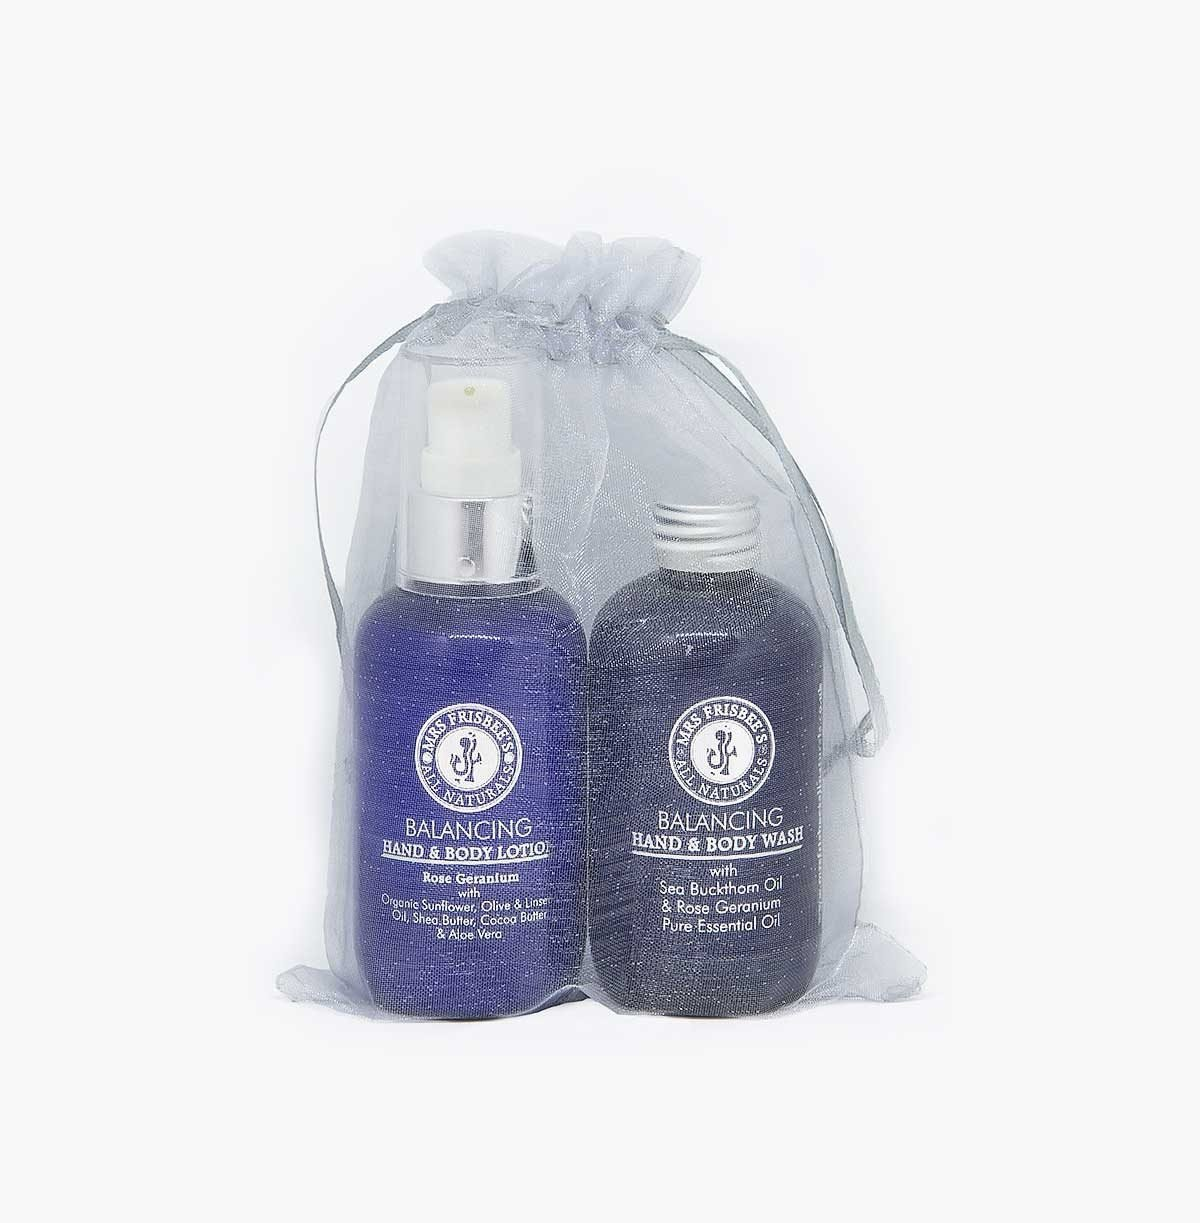 Rose geranium aromatherapy gift set with pure essential oils.